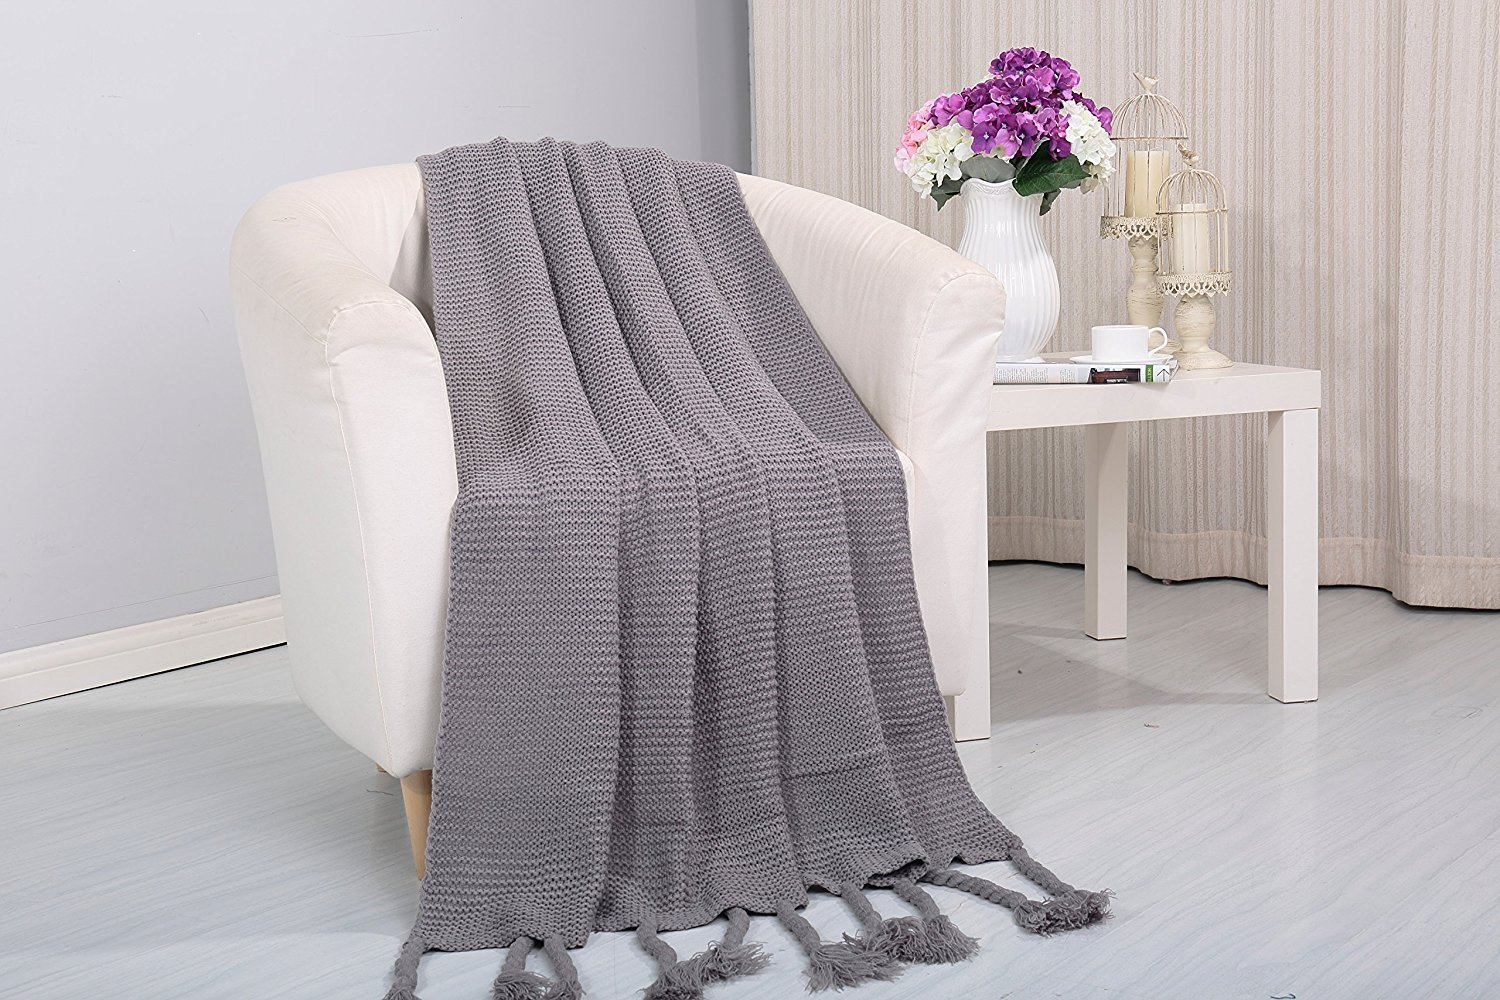 Magnificent Camilla Knitted Throw Couch Cover Sofa Blanket 50X60 Grey Creativecarmelina Interior Chair Design Creativecarmelinacom